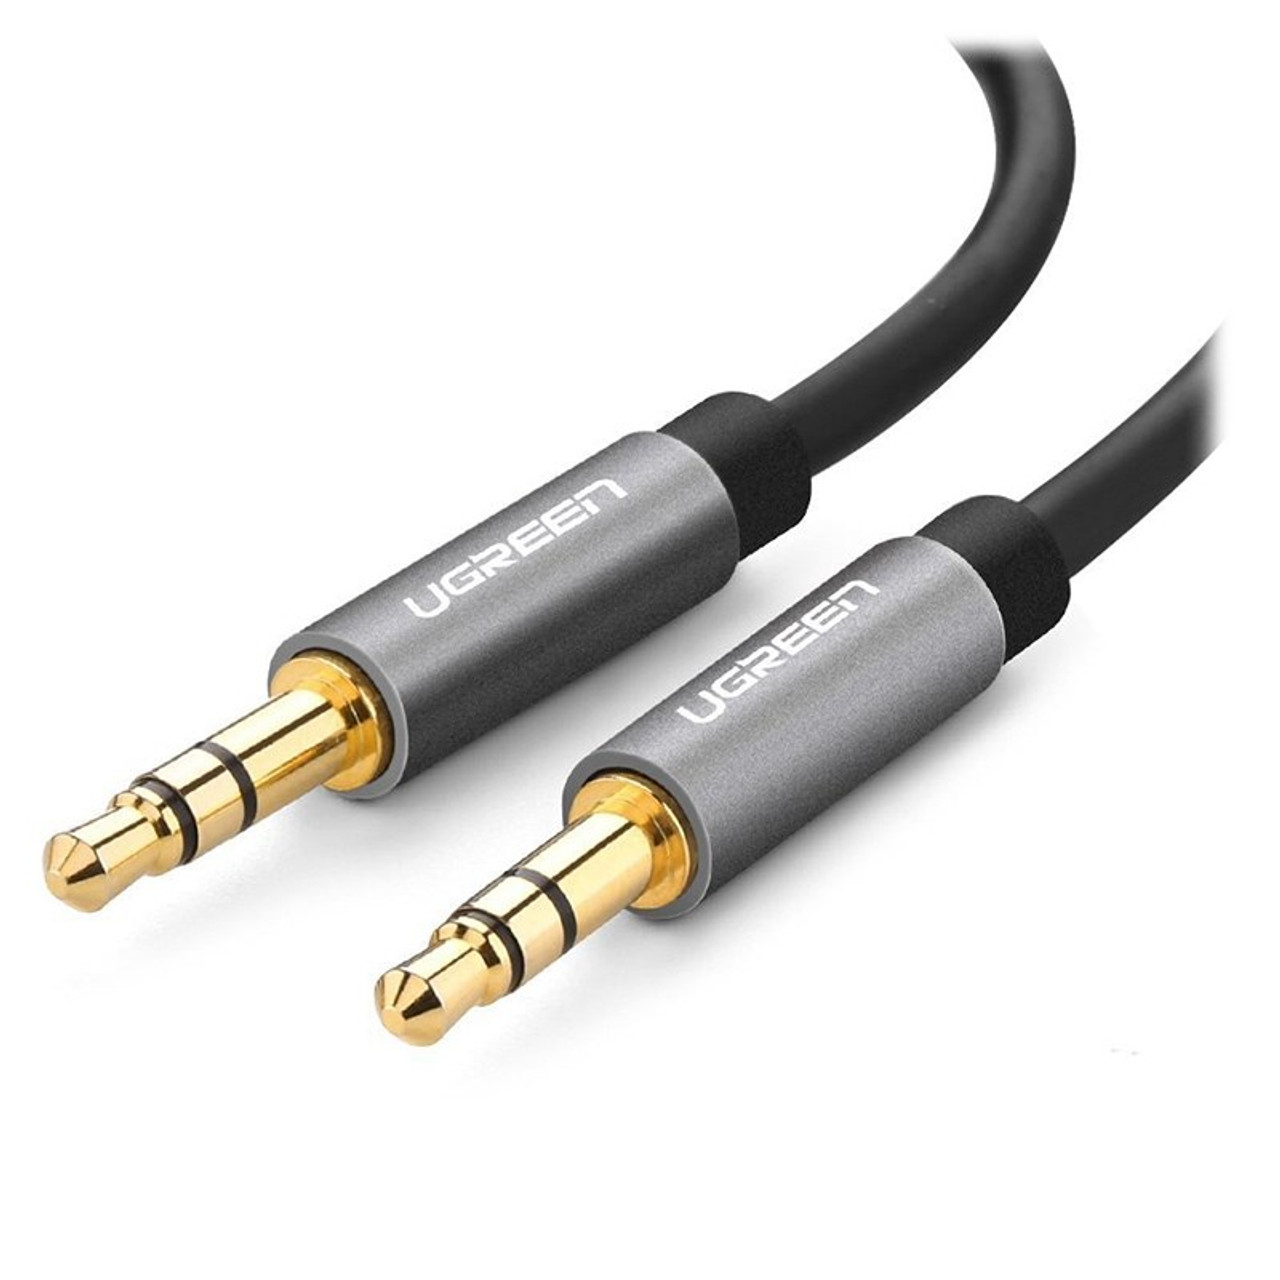 Image for UGreen 10736 3M 3.5mm to 3.5mm M/M AUX Audio Cable - Grey CX Computer Superstore